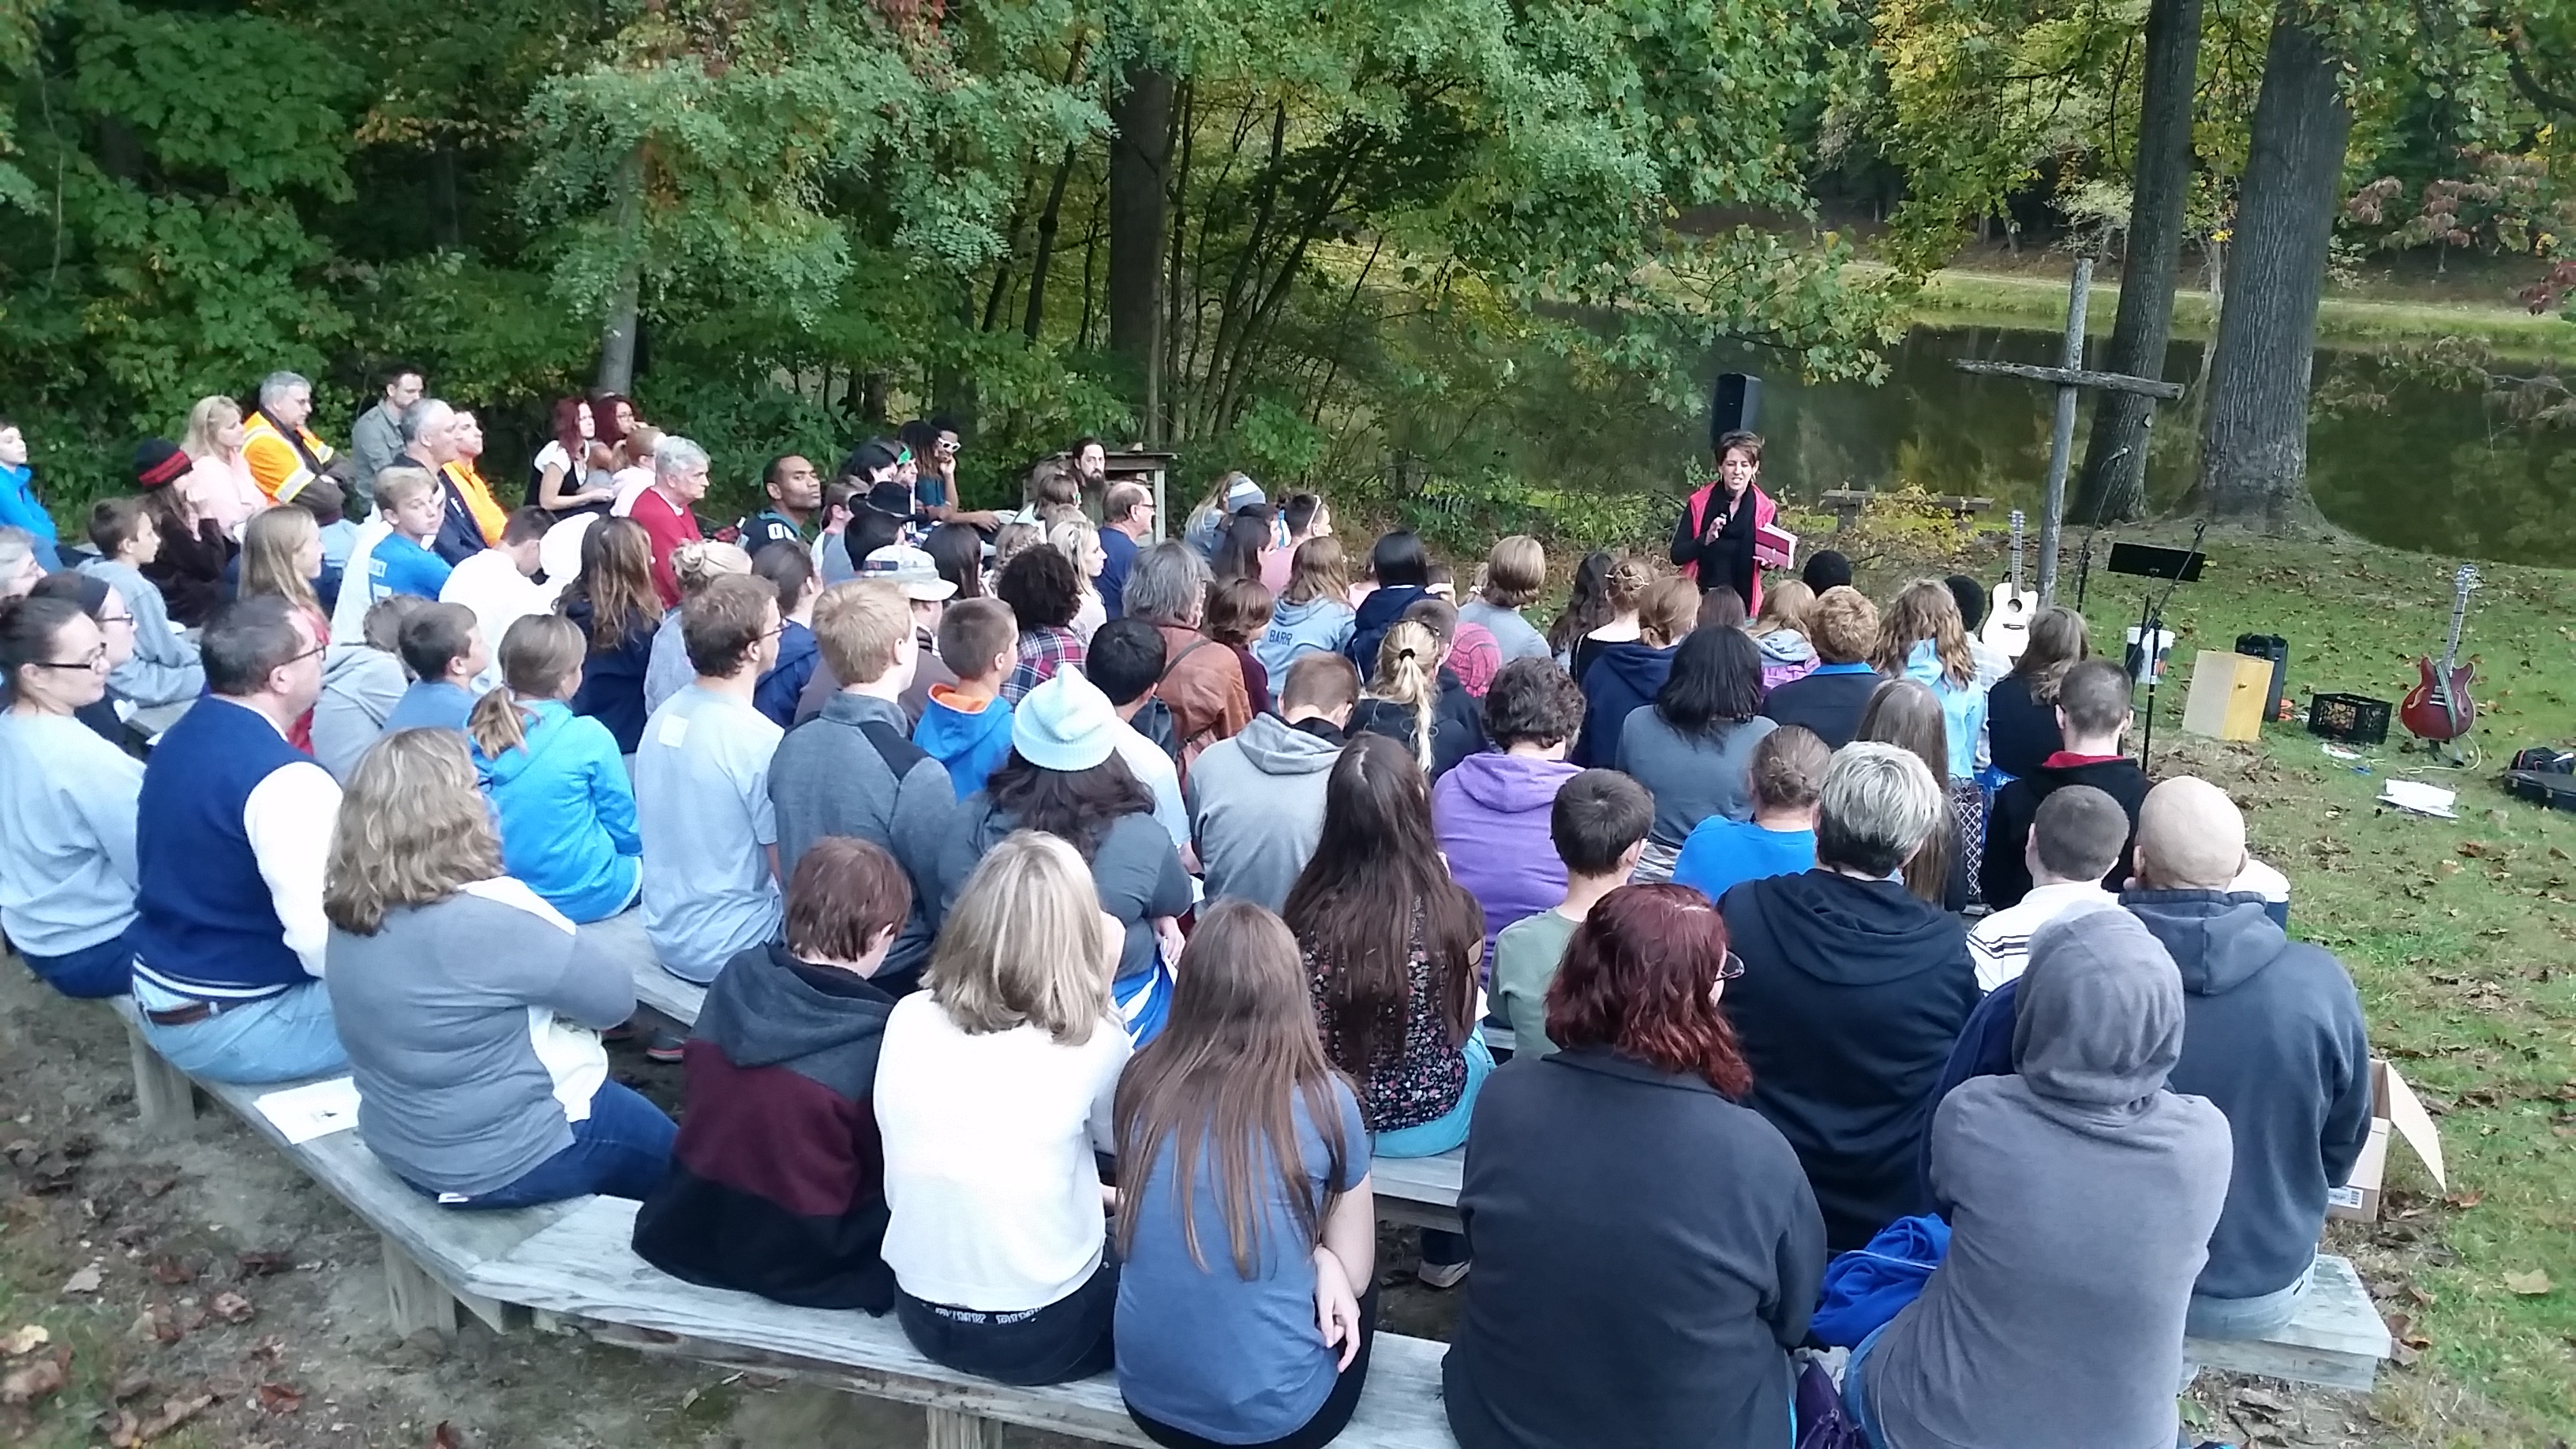 October 2016 Youth Night at Gretna Glen, where church youth groups can come enjoy free fun, fellowship and faith lessons on Sunday evenings.